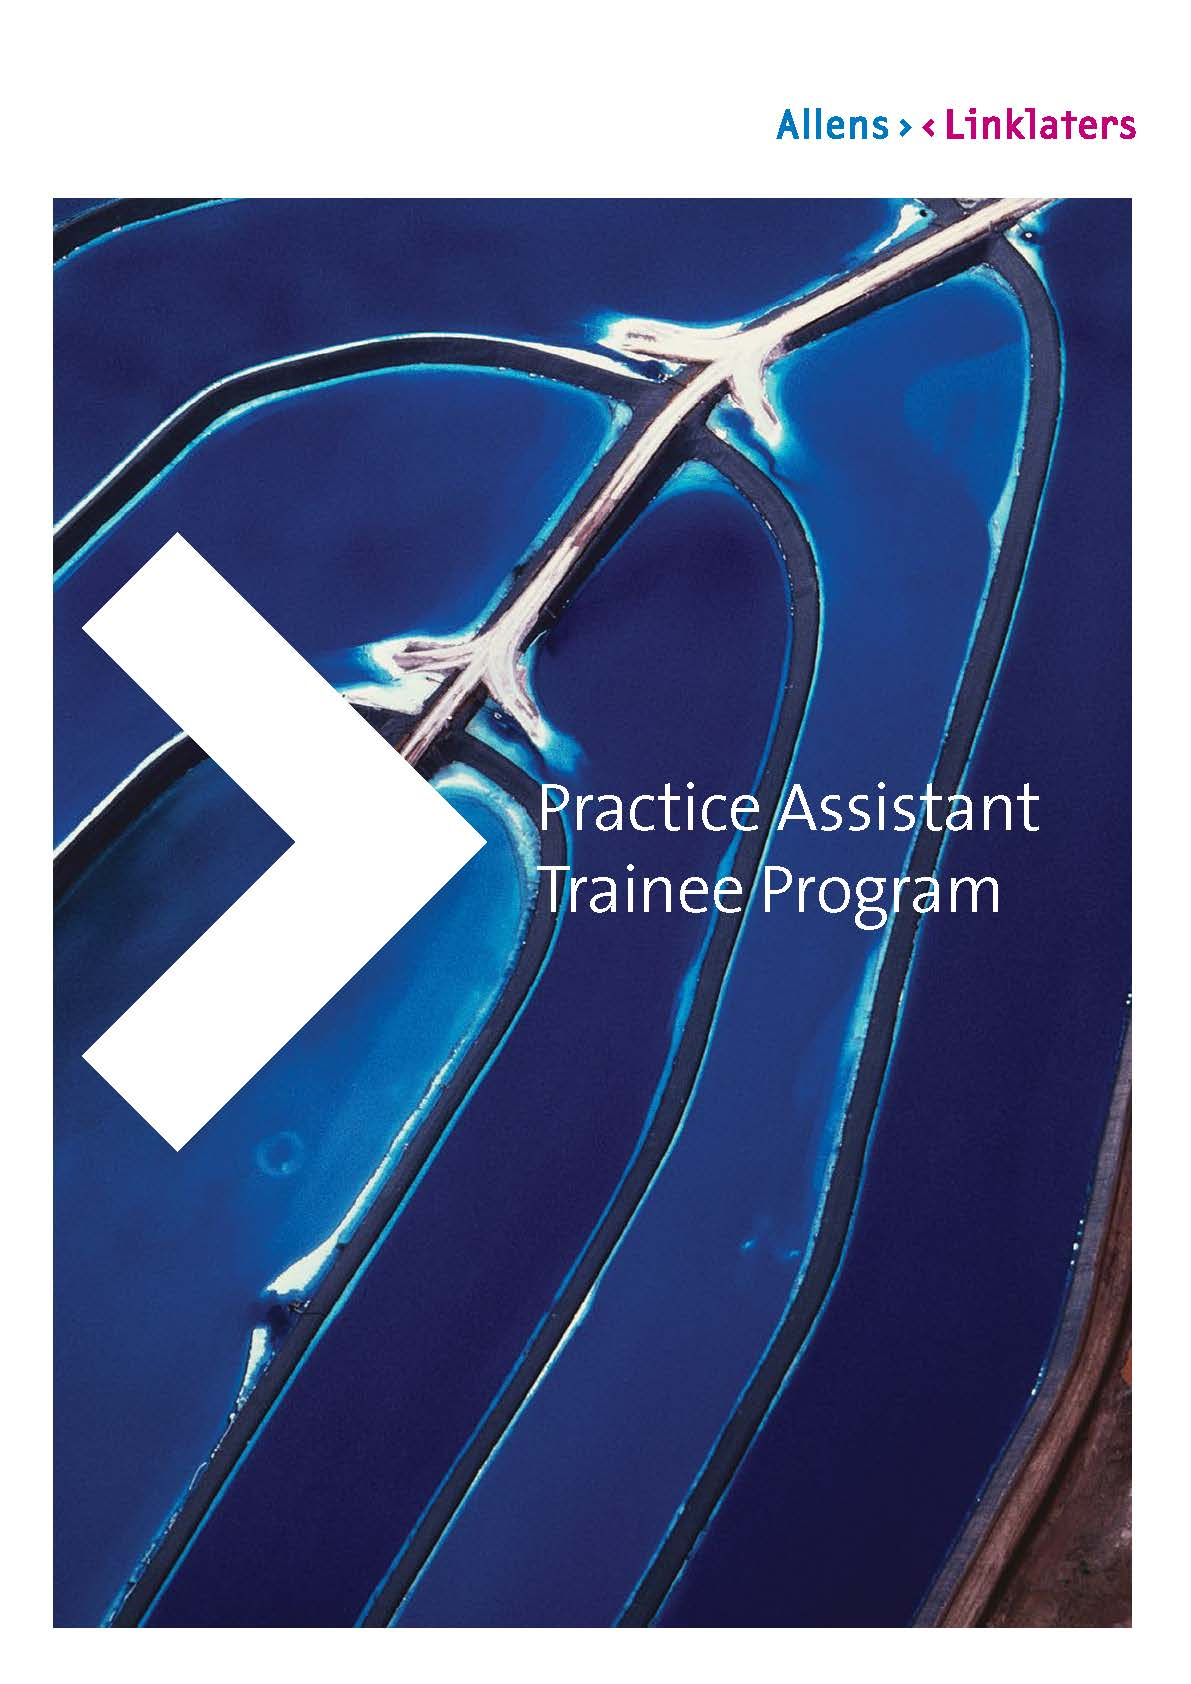 Practice Assistant Trainee Program brochure_Page_1.jpg